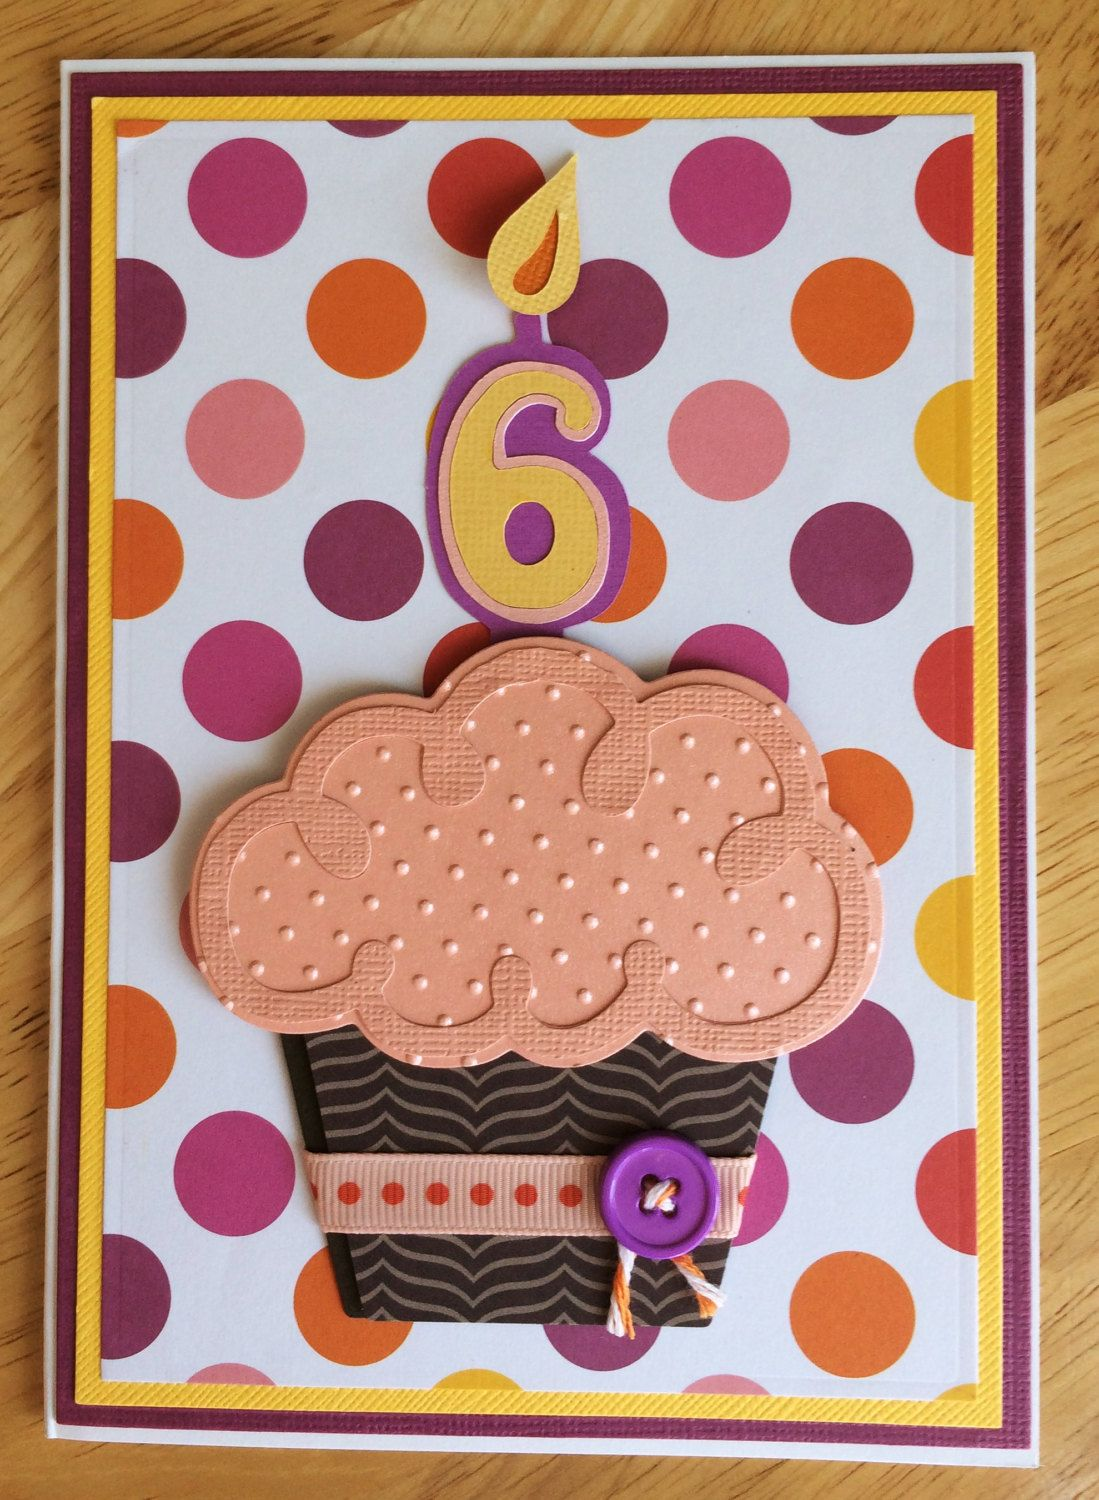 D cupcake handmade birthday card year old girl